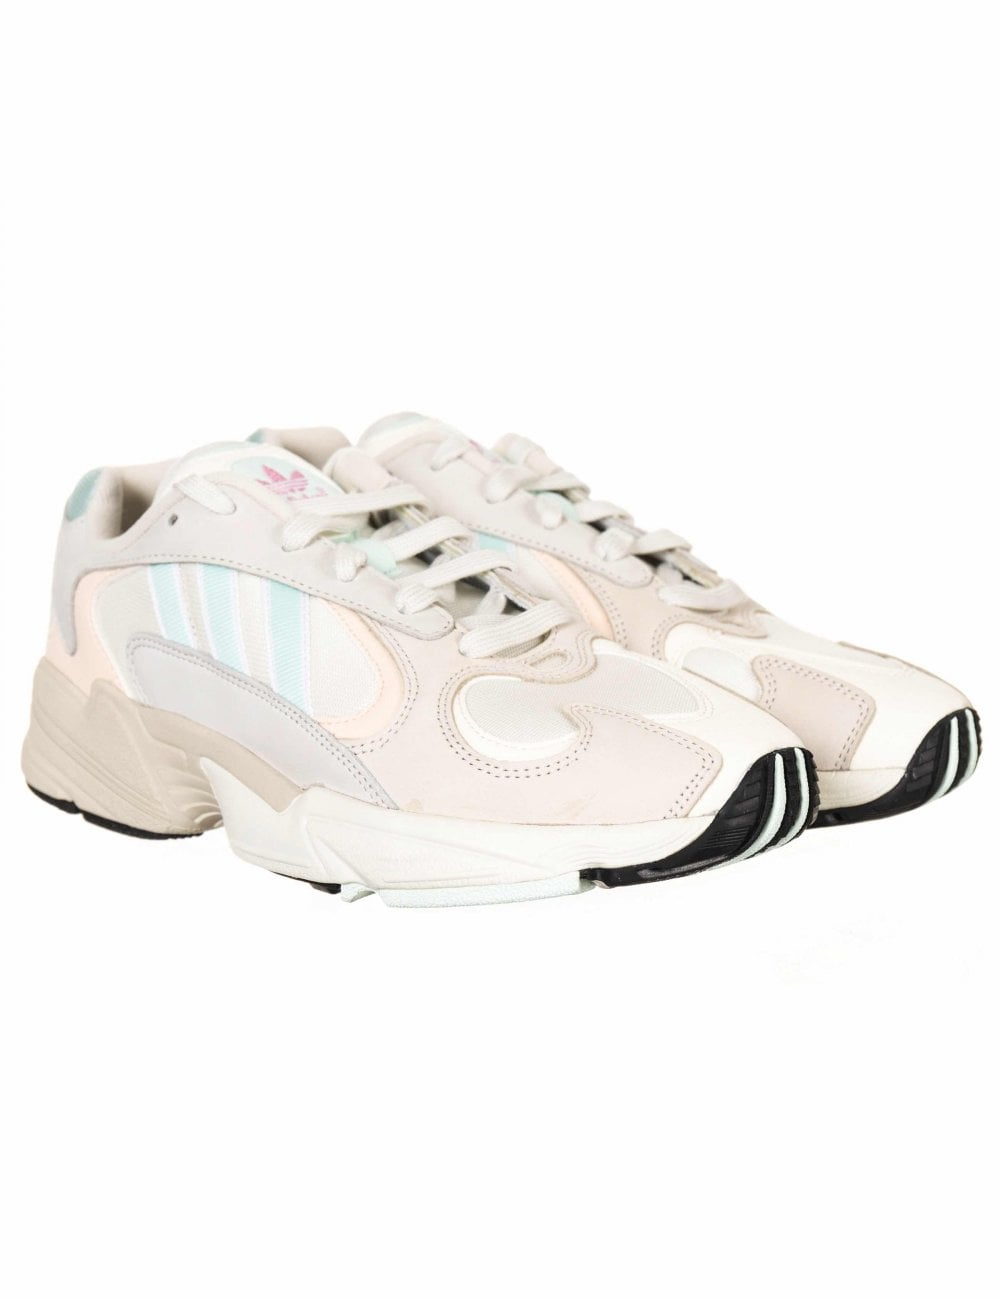 d5a0d78f897 Adidas Originals Yung-1 Trainers - Off White/Ice Mint - Footwear ...